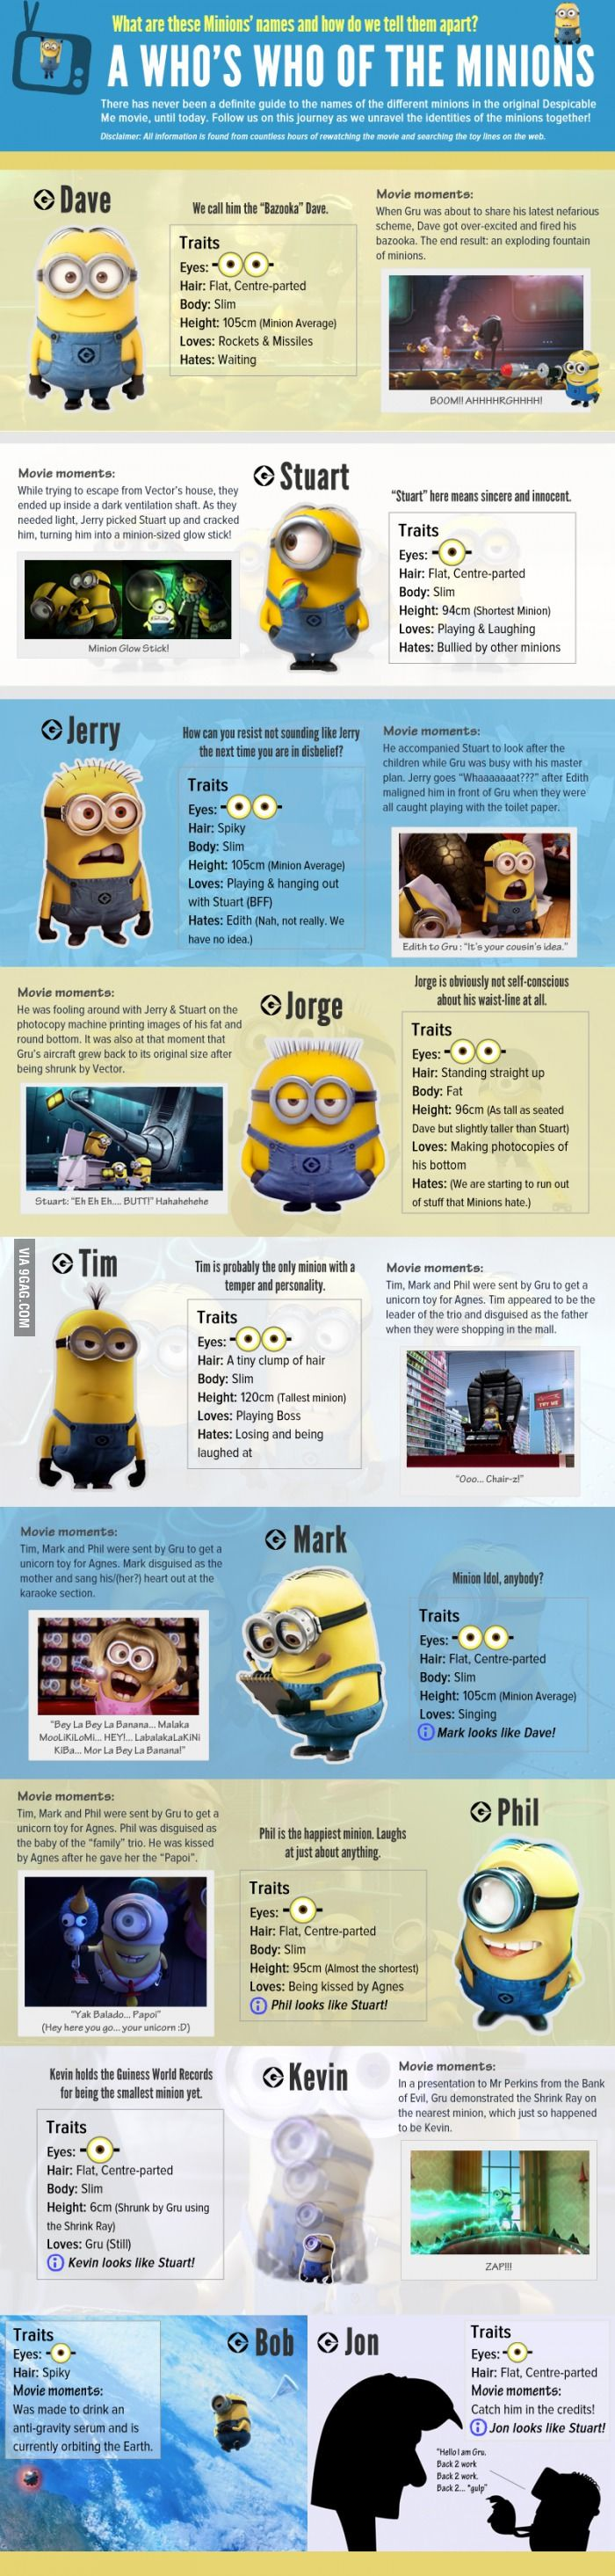 Infographic of The Minion Characters in Despicable Me